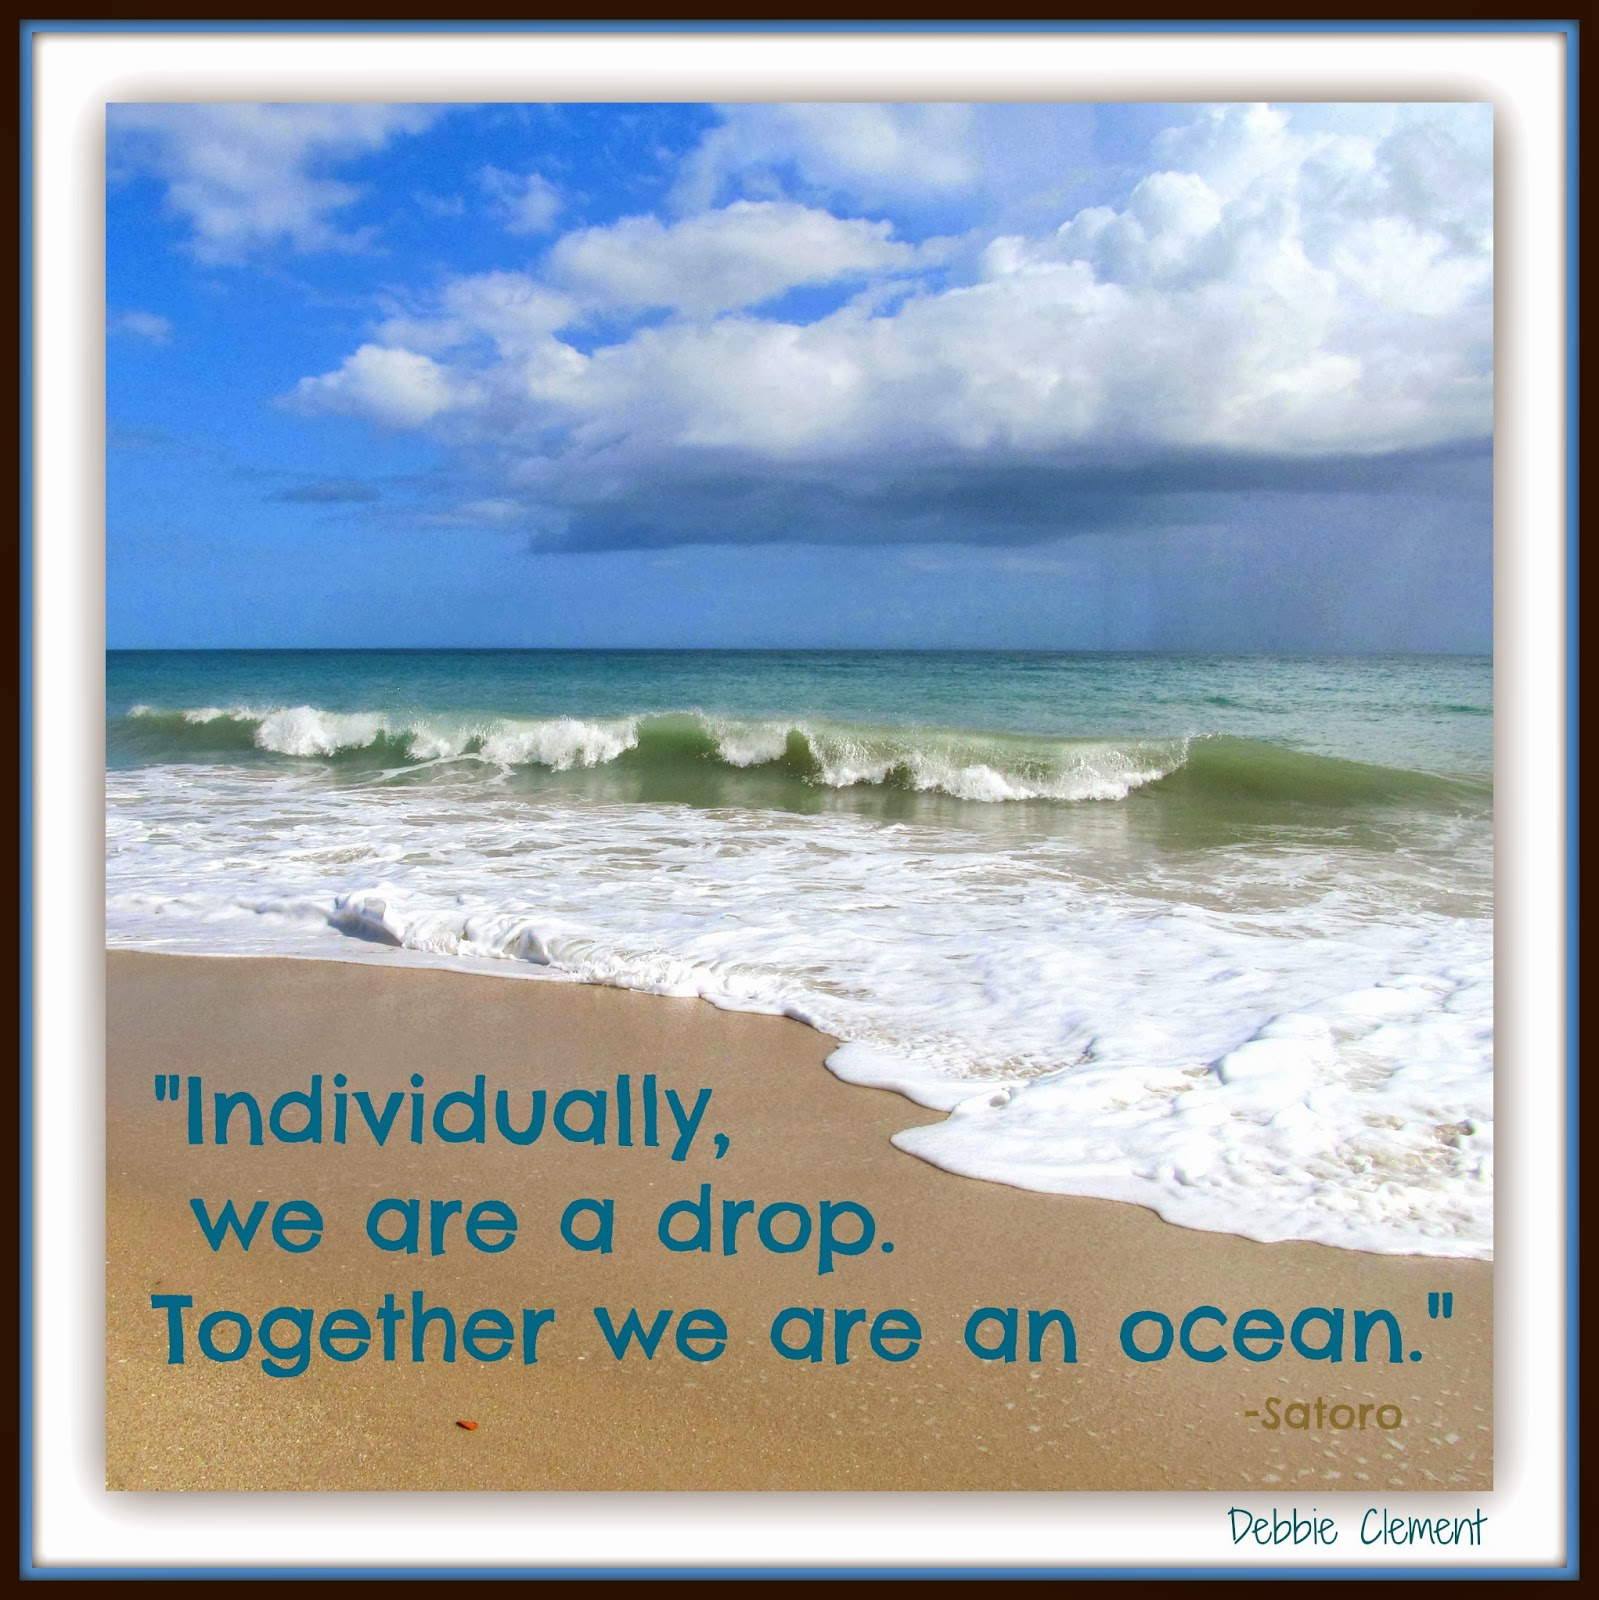 Ocean Quote of Teamwork and Togetherness from Debbie Clement (RainbowsWithinReach)